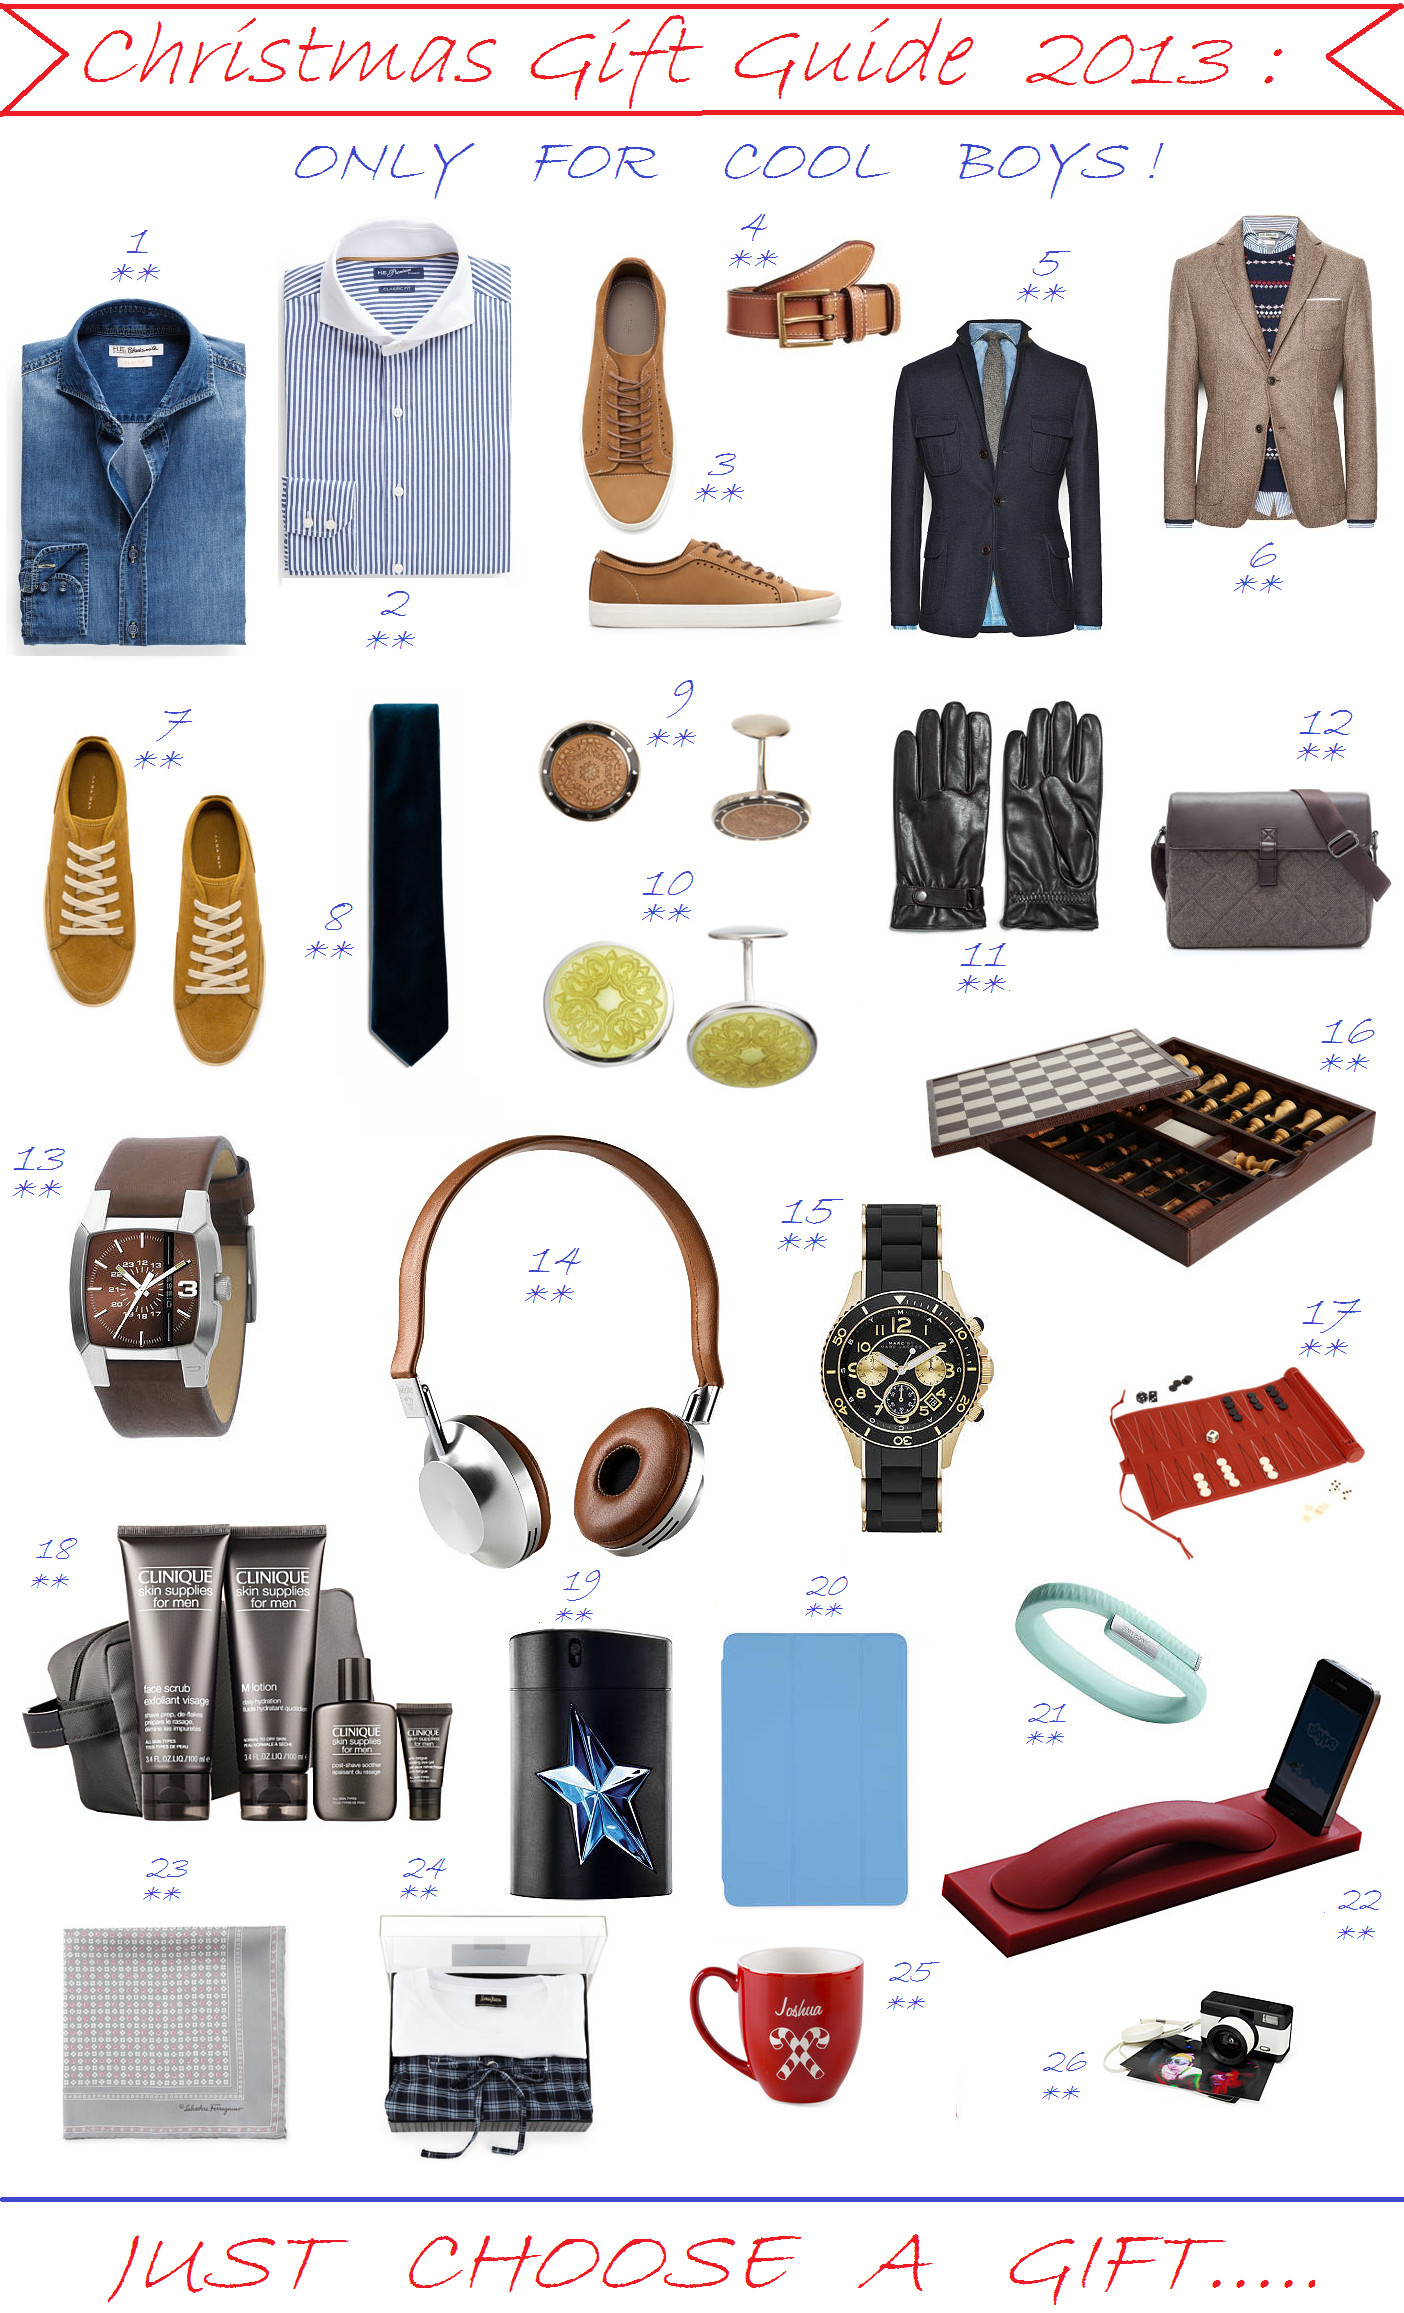 Best ideas about Cool Gift Ideas For Boys . Save or Pin CHRISTMAS GIFT GUIDE 2013 ONLY FOR COOL BOYS Now.